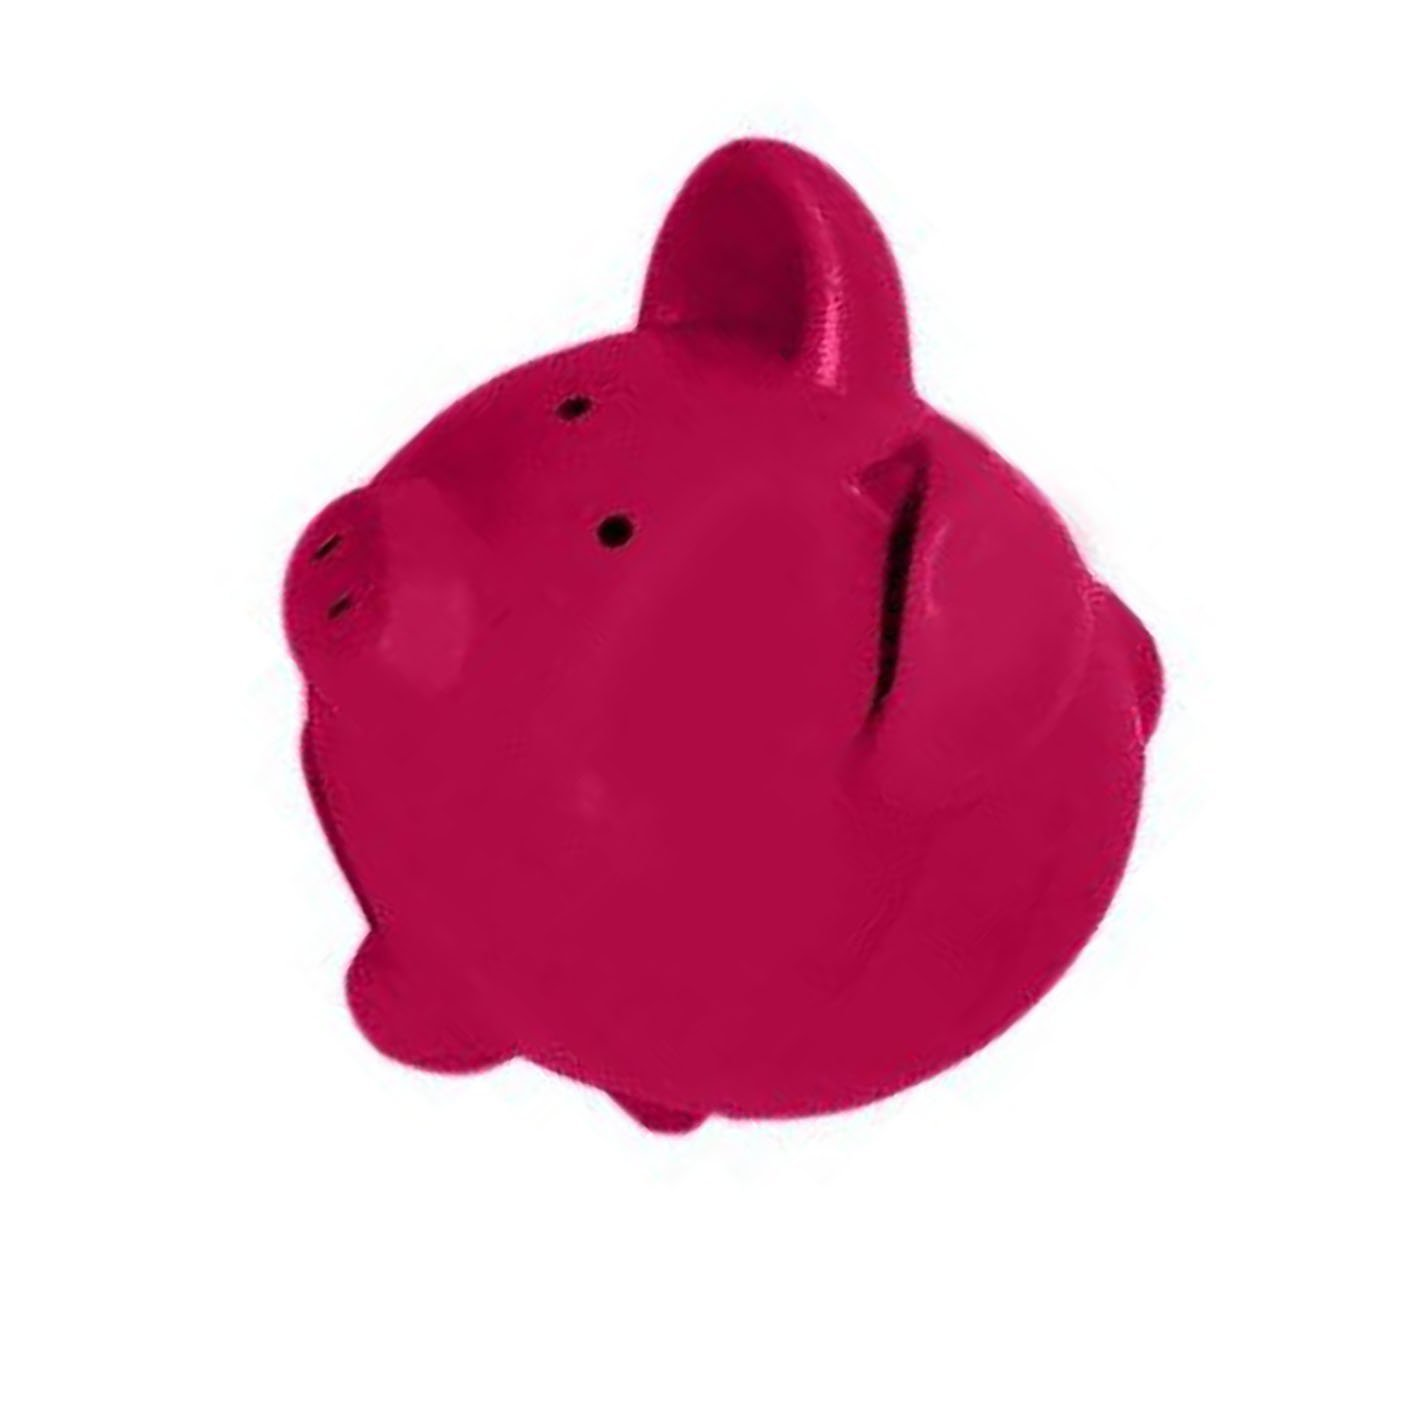 """Completely Custom {13"""" x 13'' Inch} 1 Single Large, Coin & Cash Bank Decoration for Holding Money, Made of Grade A Genuine Ceramic w/ Contemporary Solid Matte Bank Piggy Style {Magenta & Black}"""